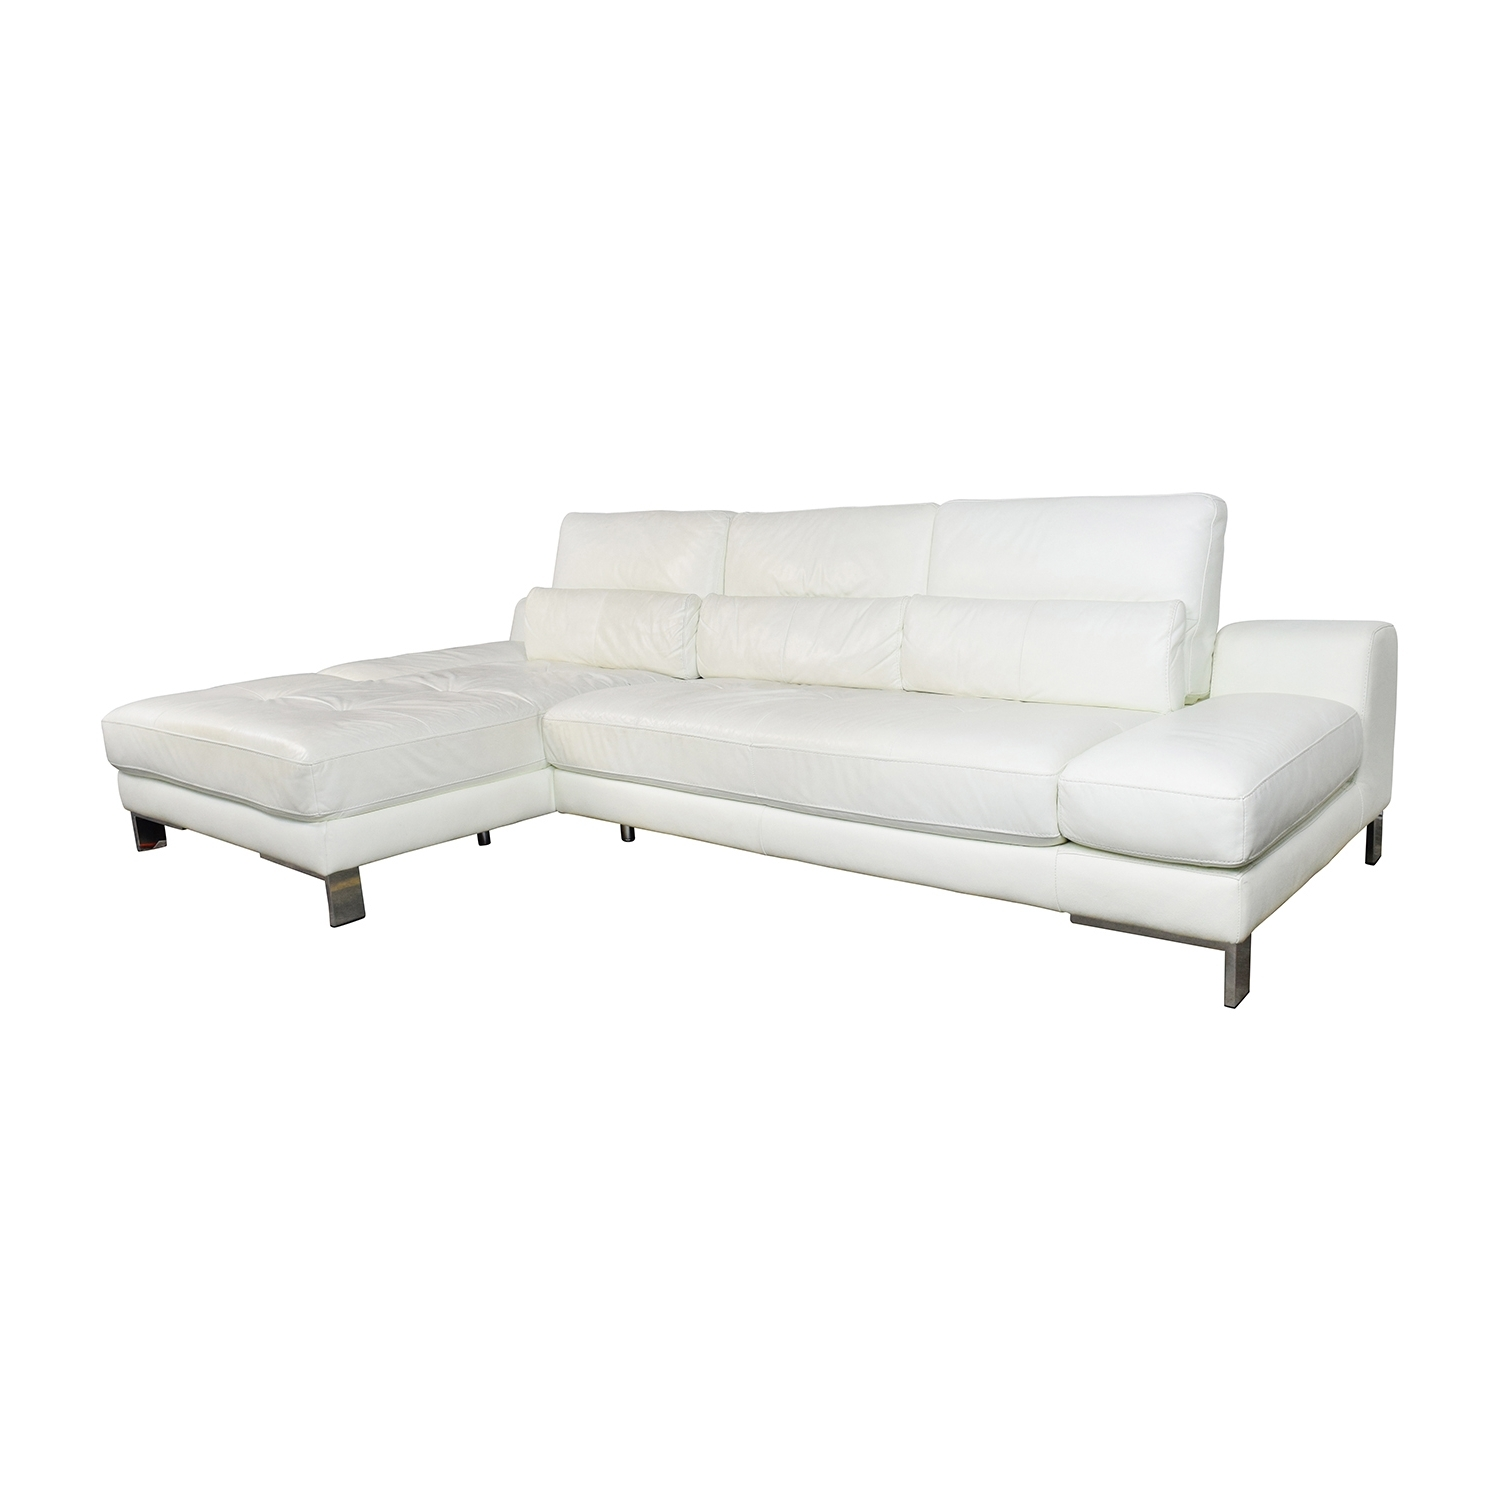 [%72% Off – Mobilia Canada Mobilia Canada Funktion White Leather Regarding Recent Mobilia Sectional Sofas|Mobilia Sectional Sofas Intended For Latest 72% Off – Mobilia Canada Mobilia Canada Funktion White Leather|Most Current Mobilia Sectional Sofas In 72% Off – Mobilia Canada Mobilia Canada Funktion White Leather|Fashionable 72% Off – Mobilia Canada Mobilia Canada Funktion White Leather Intended For Mobilia Sectional Sofas%] (View 2 of 15)